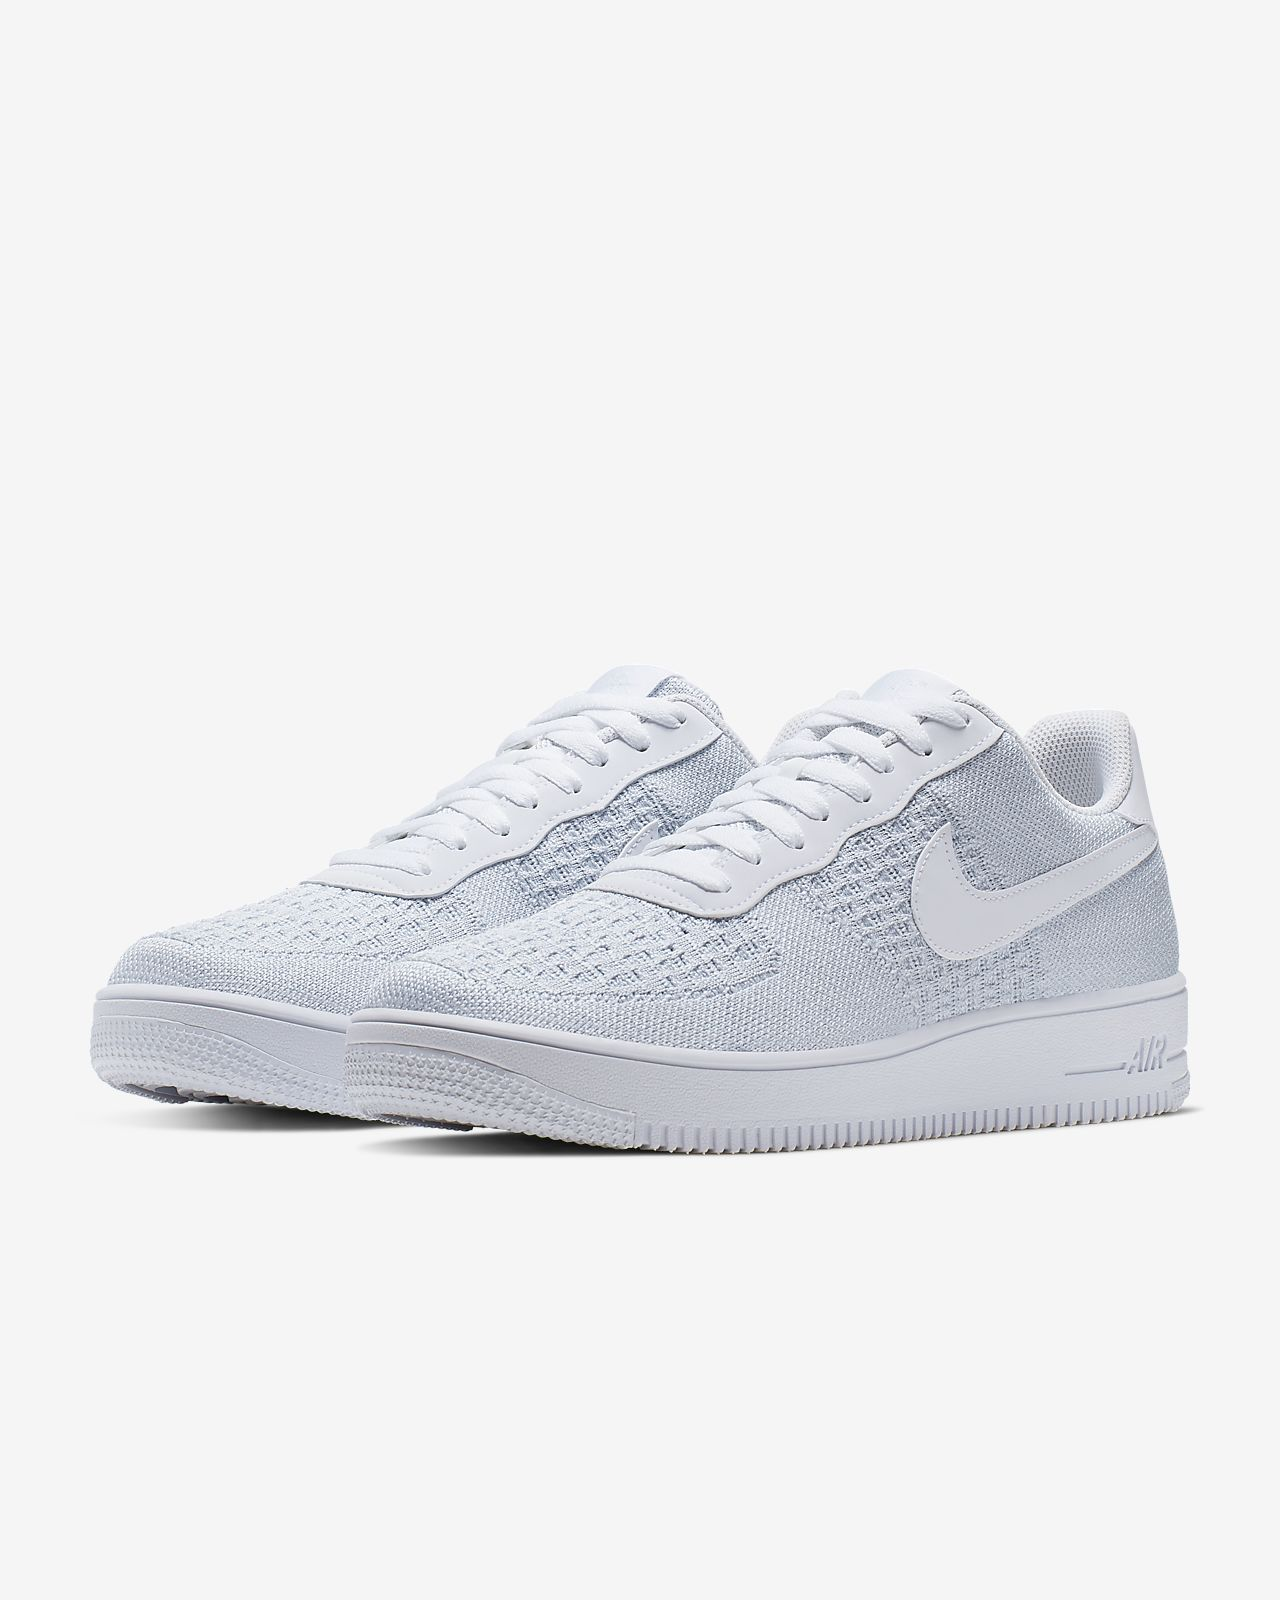 870a5053ef Top 10 Punto Medio Noticias | Nike Air Force Flyknit 2.0 White